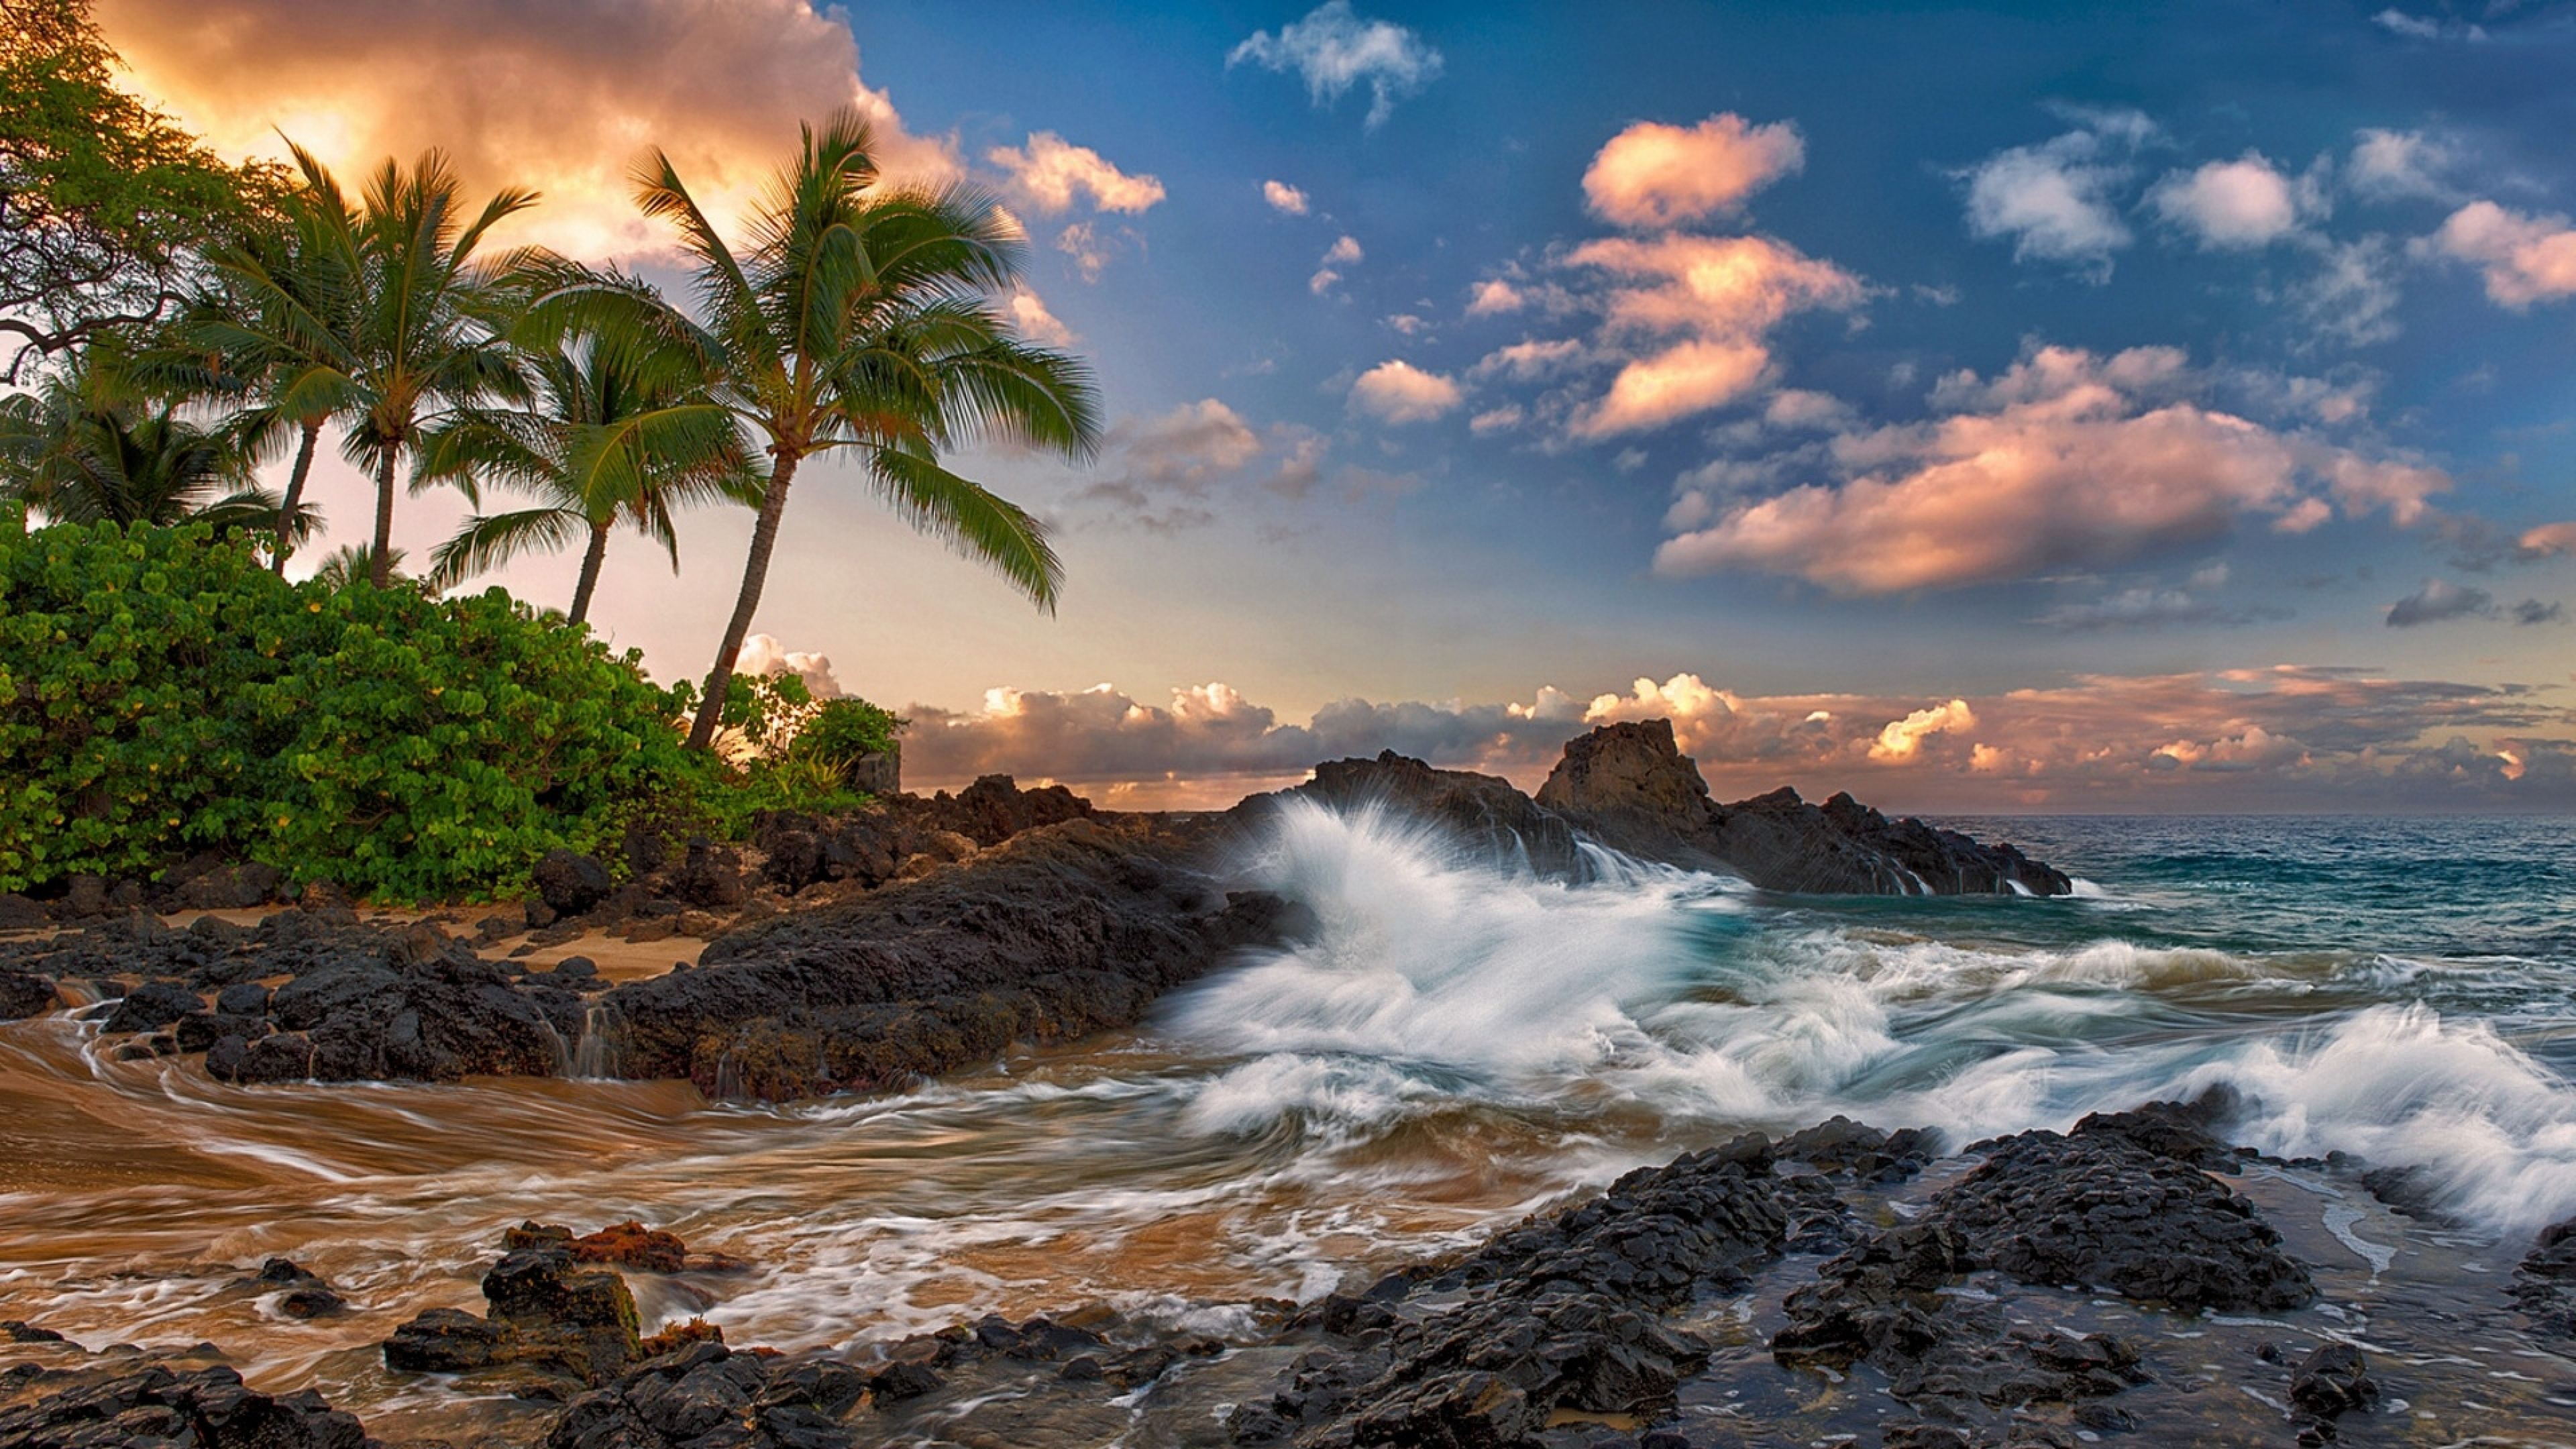 Palm trees Clouds Tropical Coast Wallpaper Background 4K Ultra HD 3840x2160